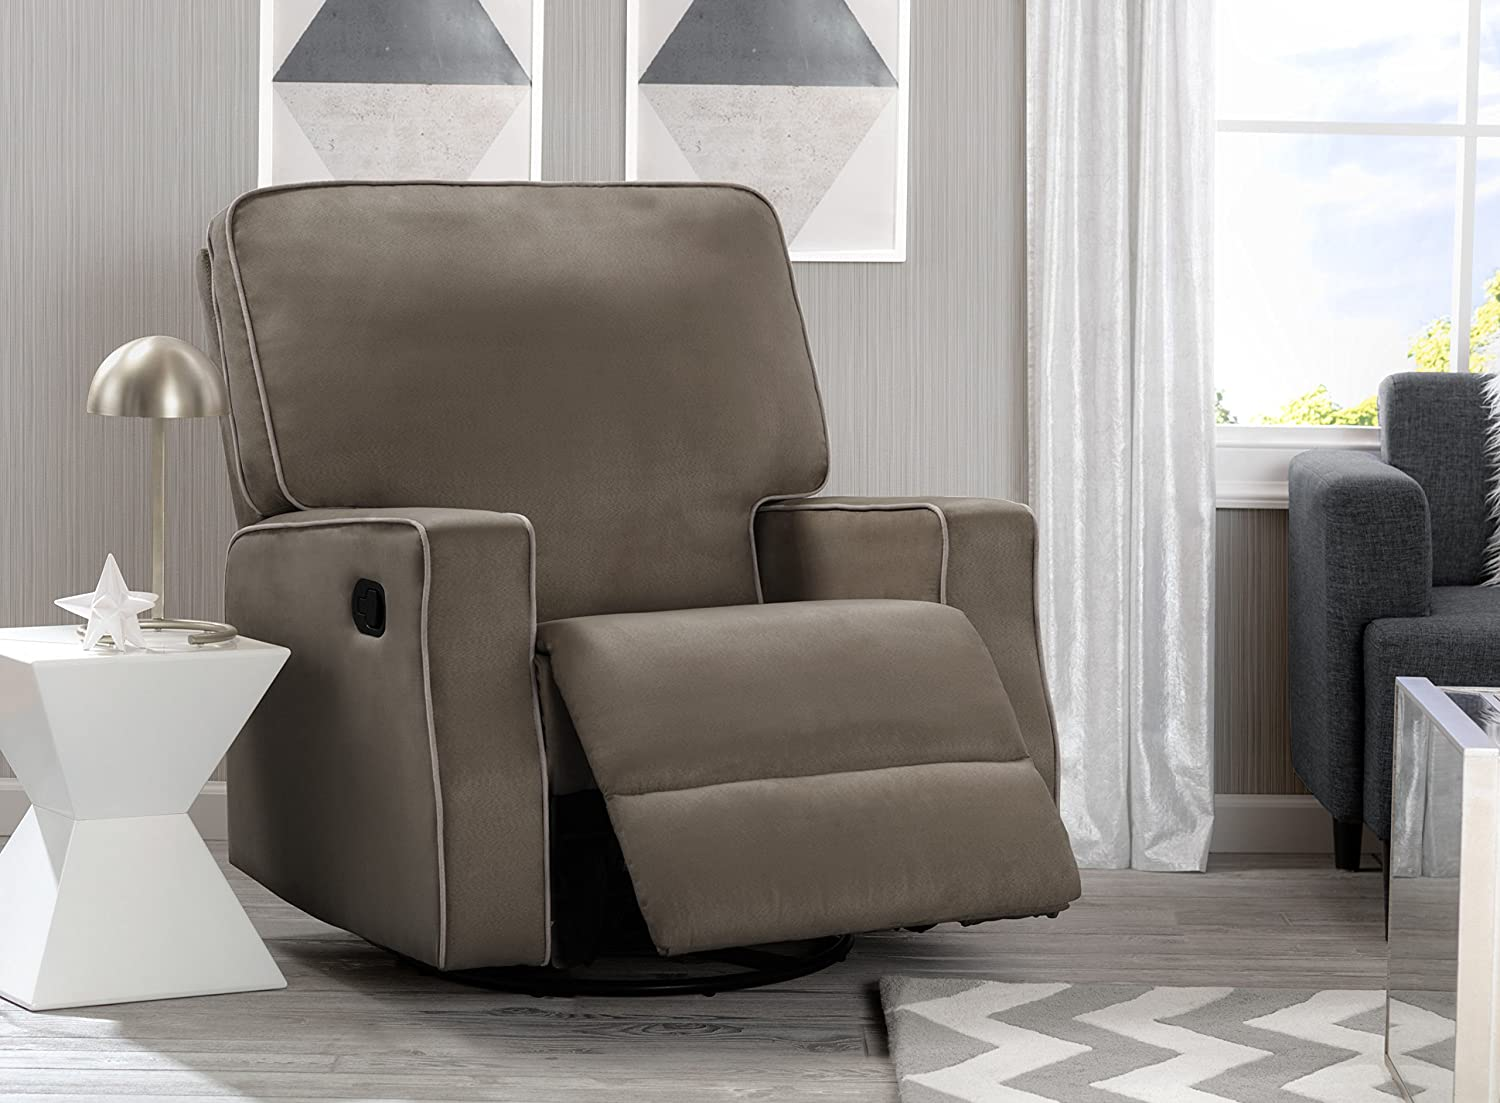 Delta Home Chambers Bay Recliner, Graphite w Dove Grey Welt